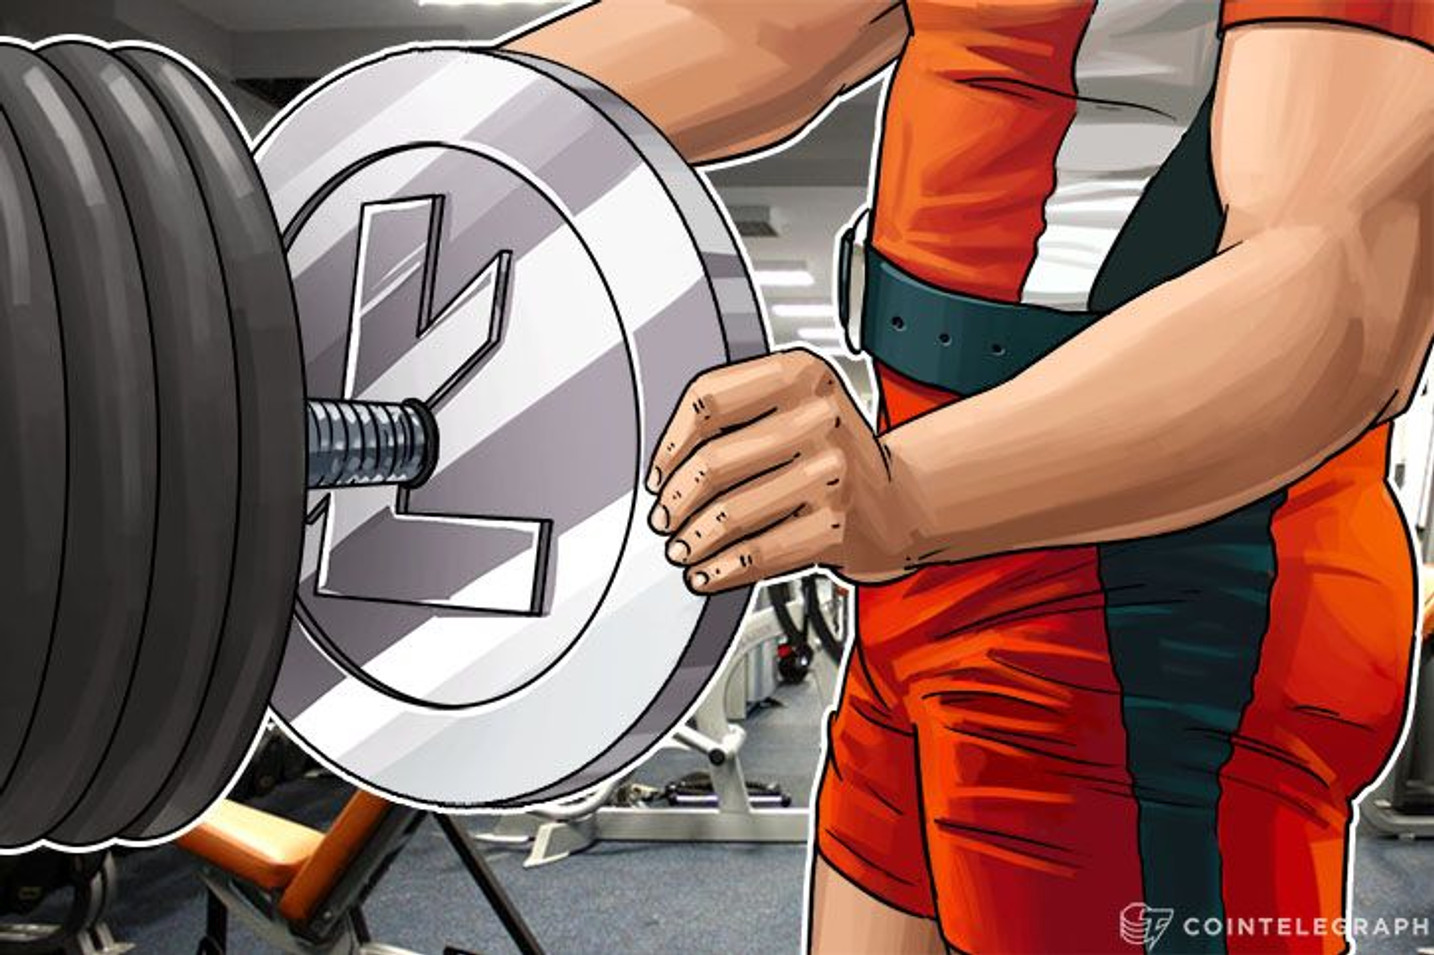 Litecoin's Charlie Lee Quits Coinbase, Receives $12,000 Donation